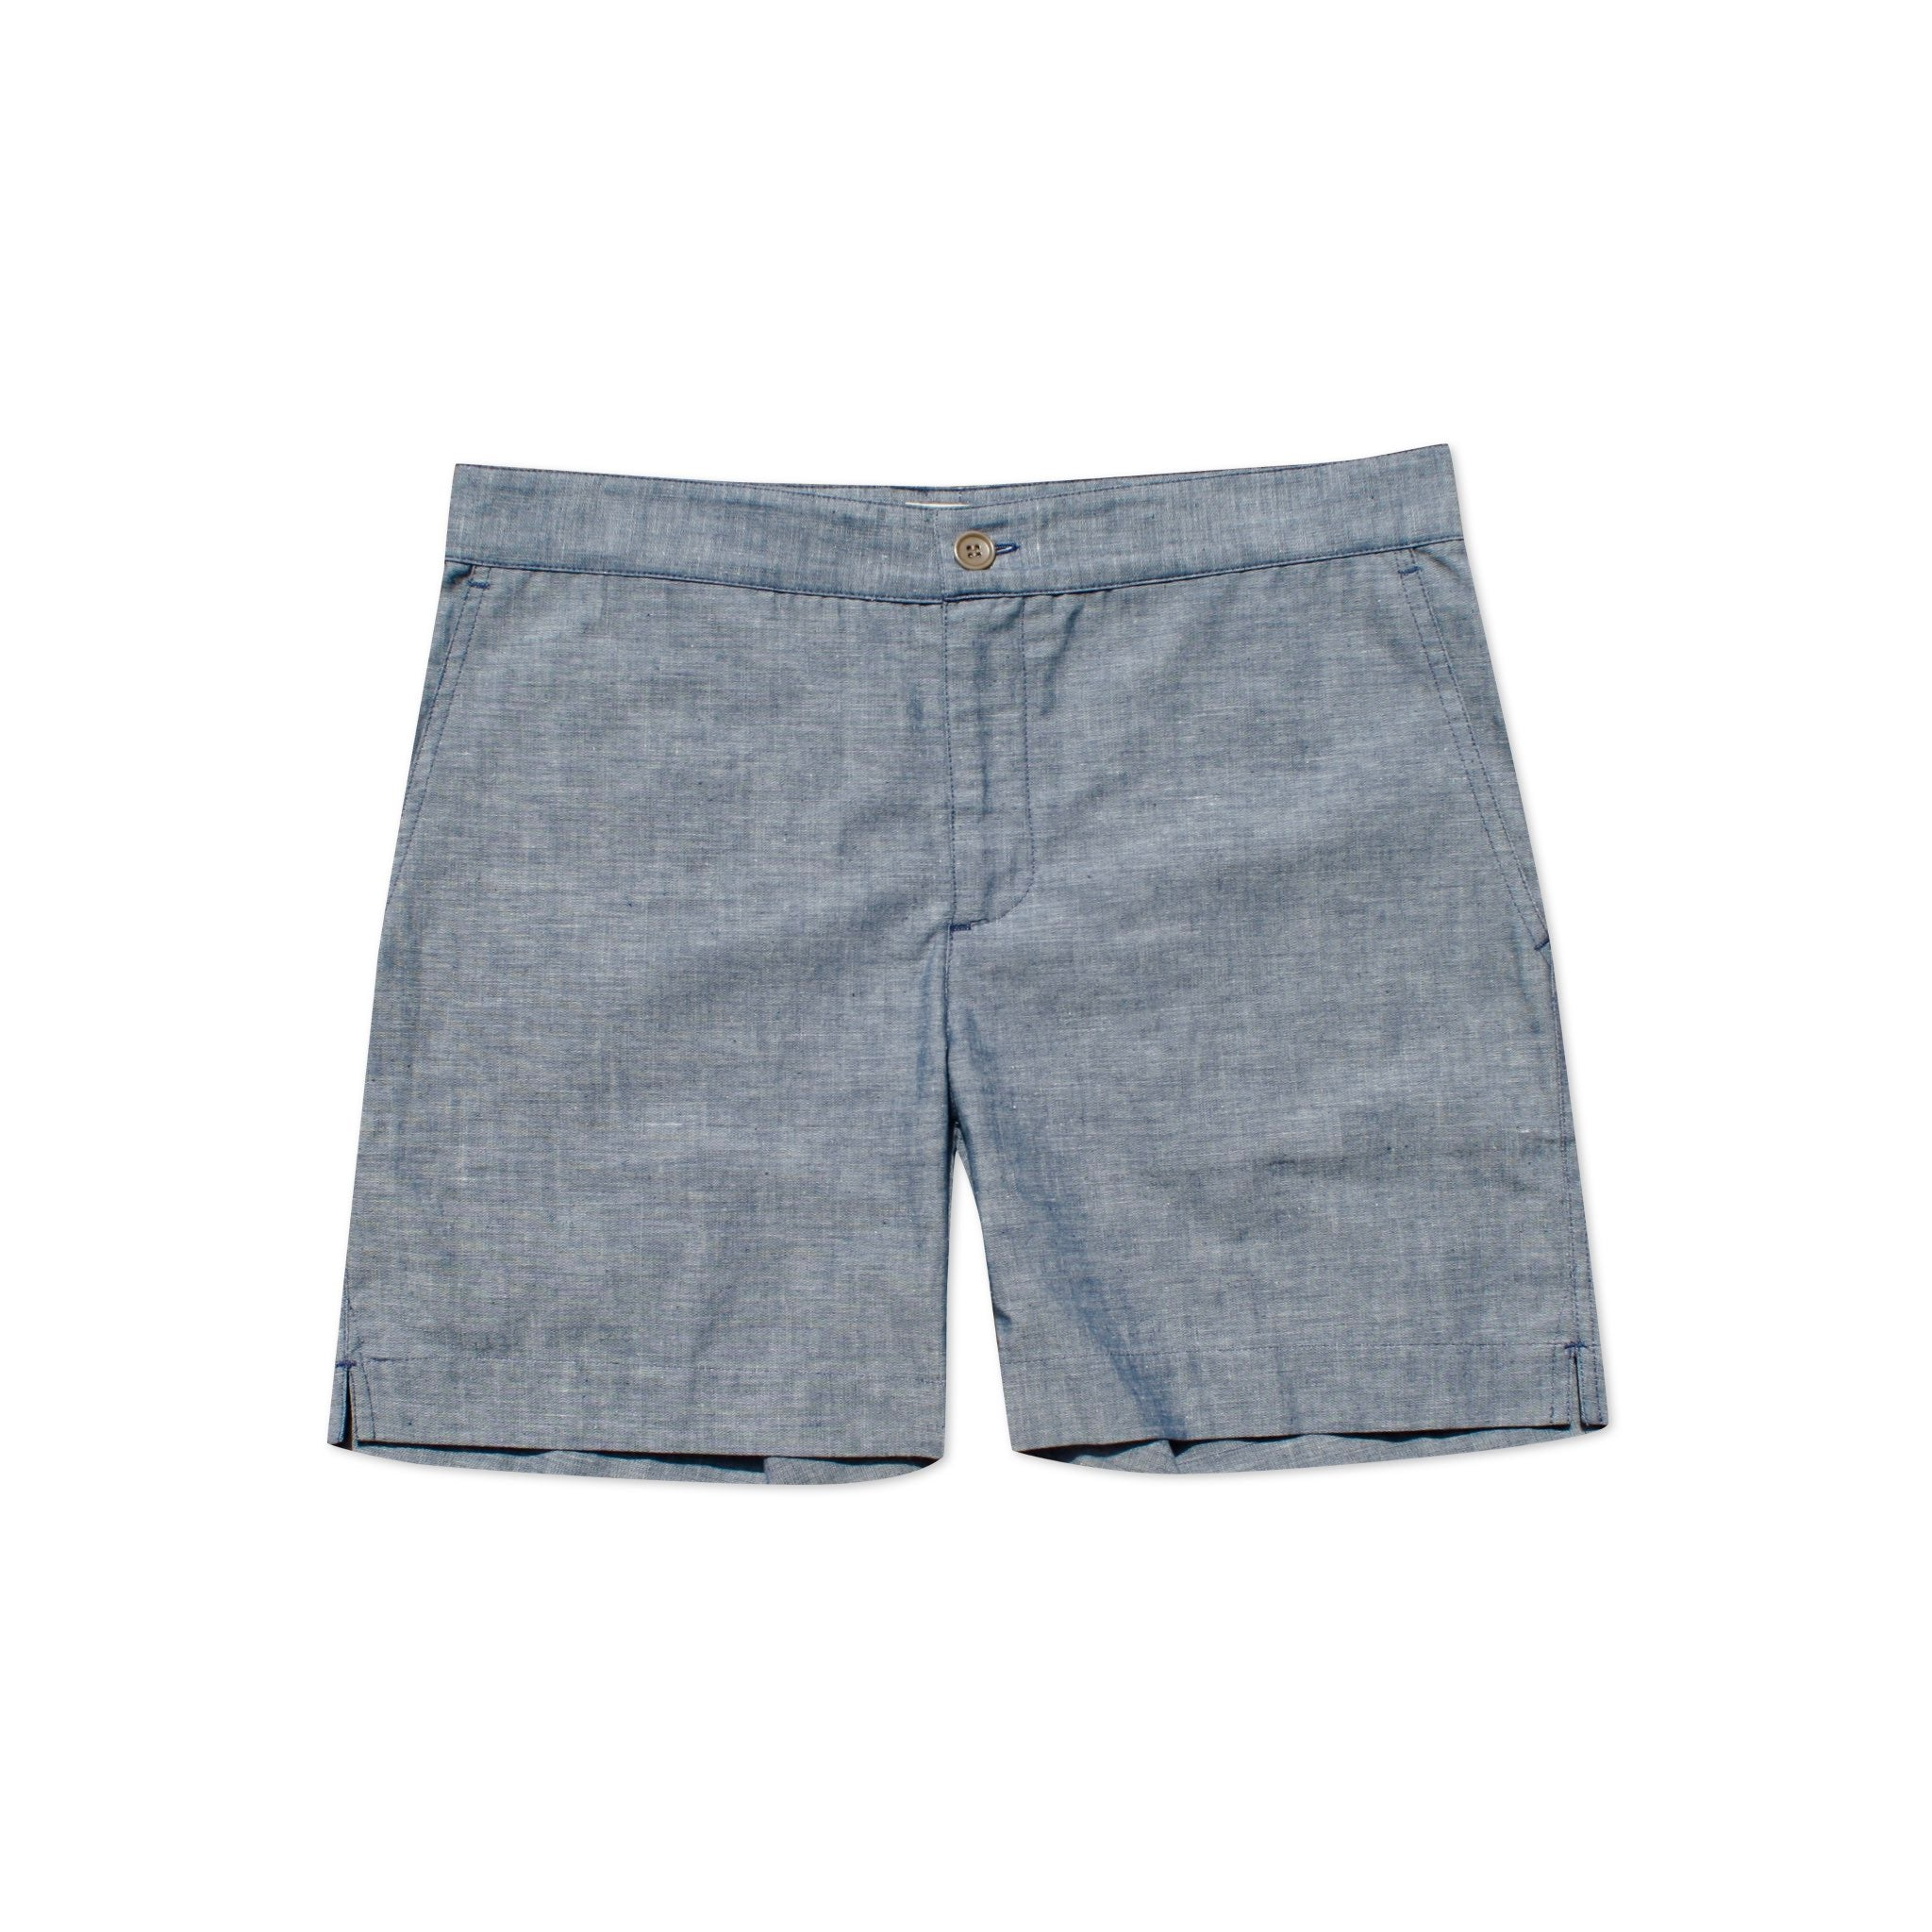 S2 Blue Cotton Shorts